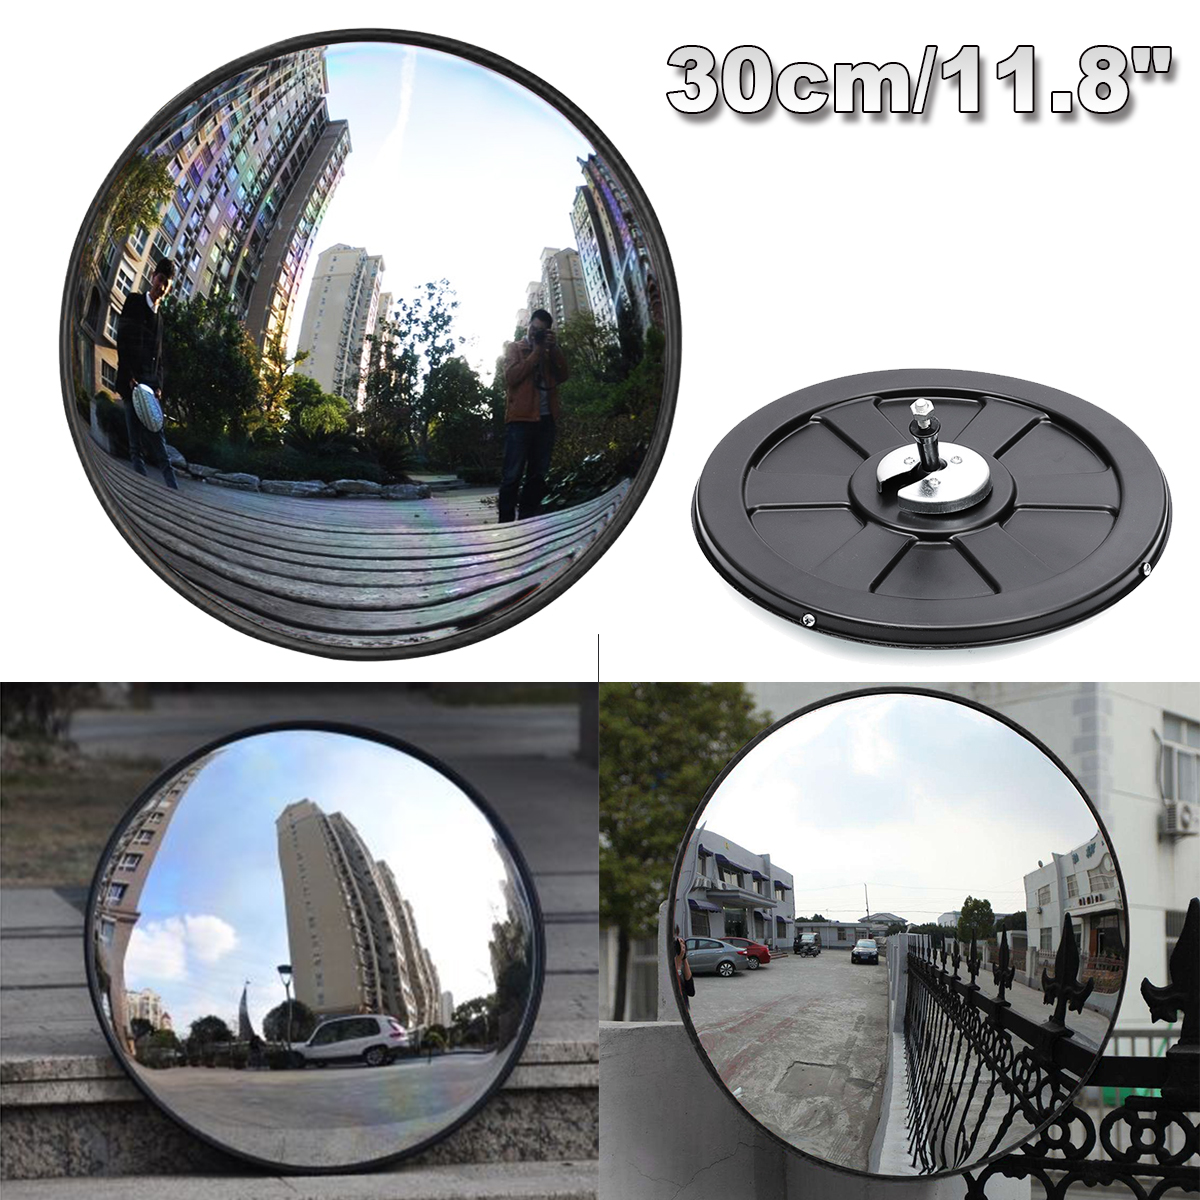 30cm-wide-angle-security-road-mirror-curved-for-indoor-burglar-outdoor-safurance-roadway-safety-traffic-signal-convex-mirror